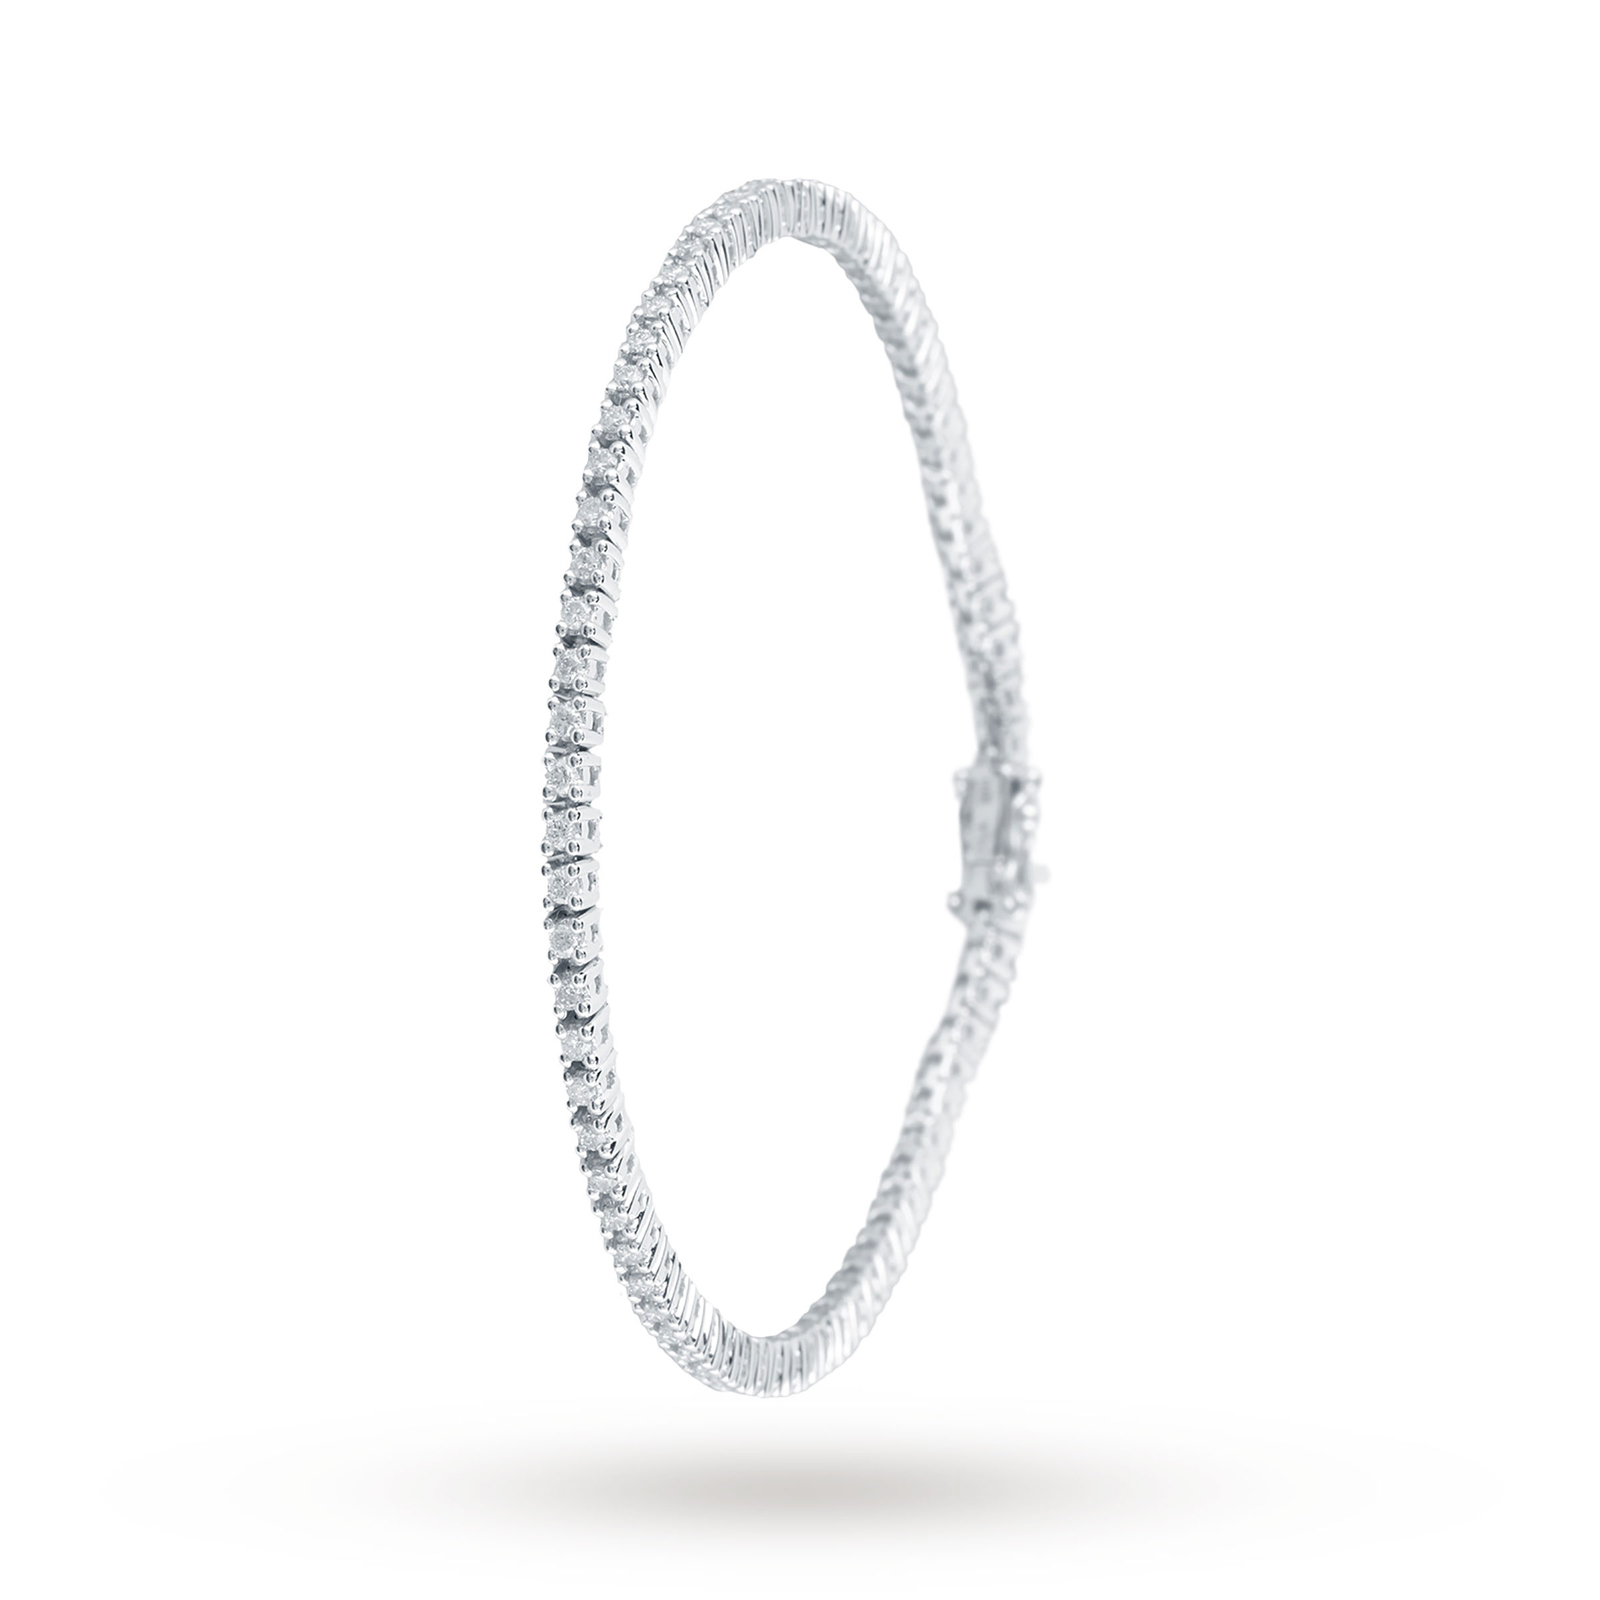 jewelry products diamond bangles bracelet bangle white gold elias allan